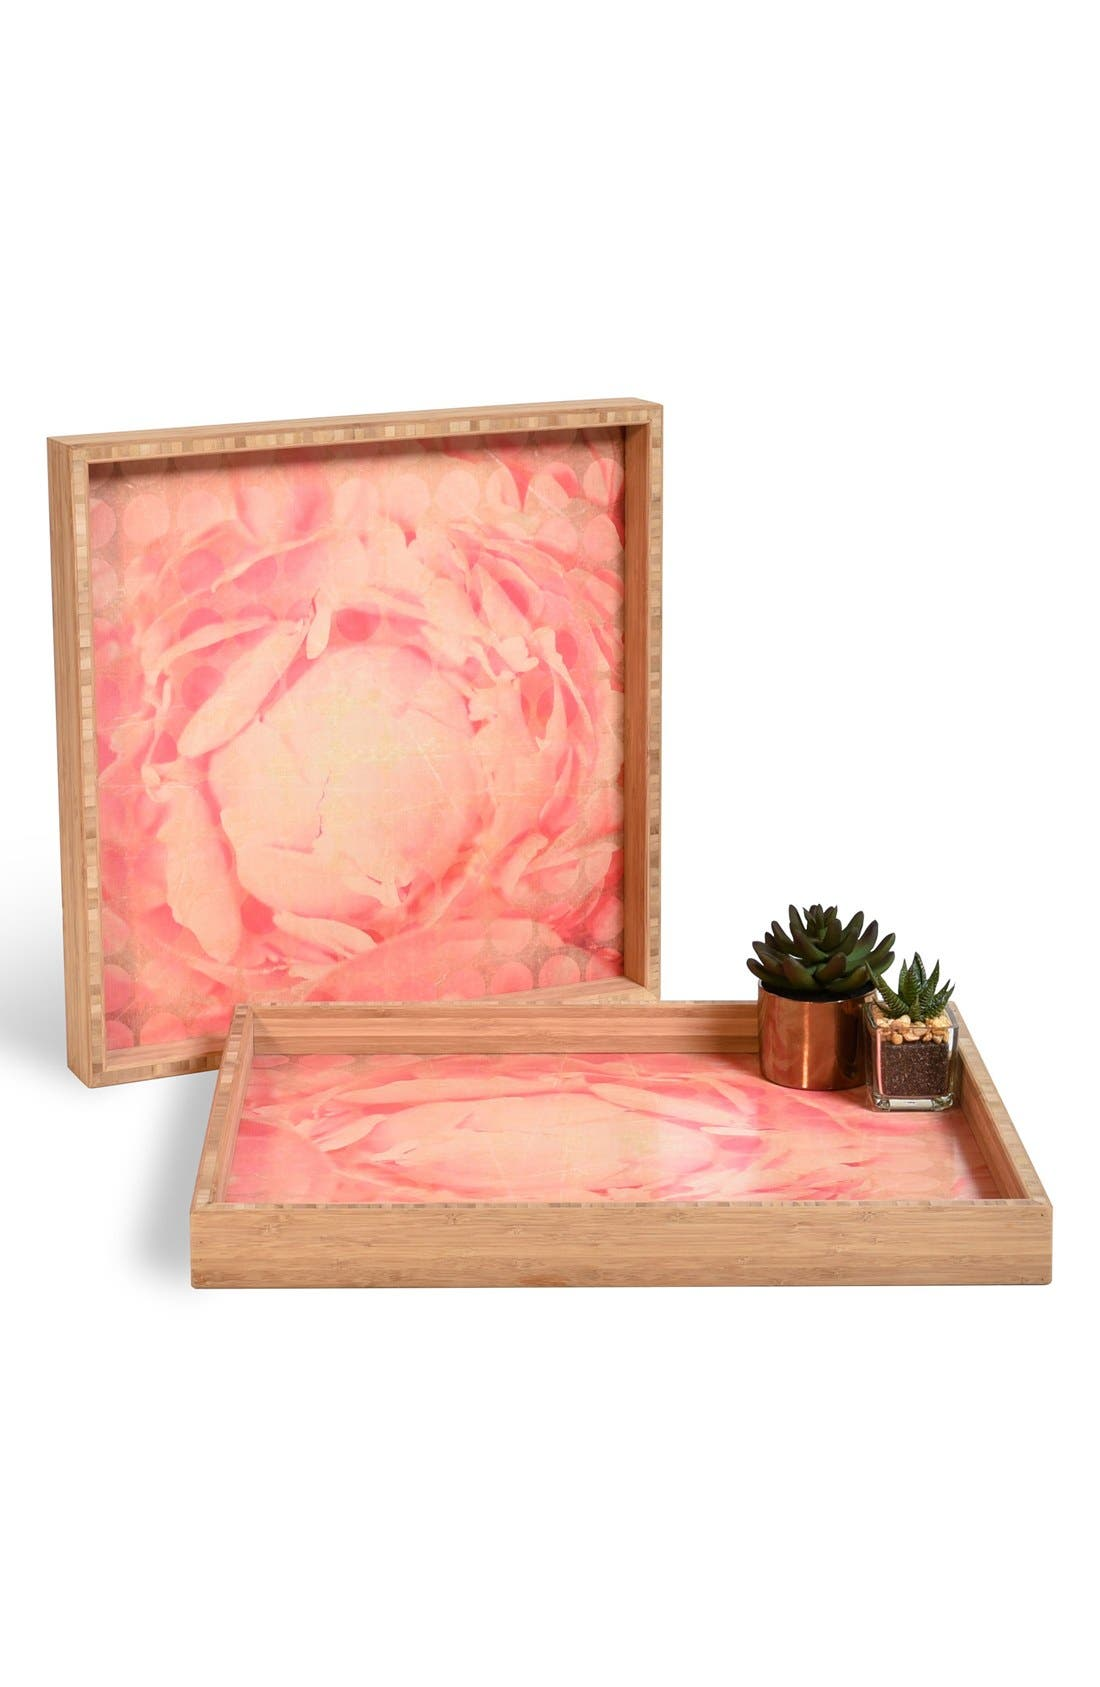 'Flowered Dots' Decorative Serving Tray,                             Main thumbnail 1, color,                             650